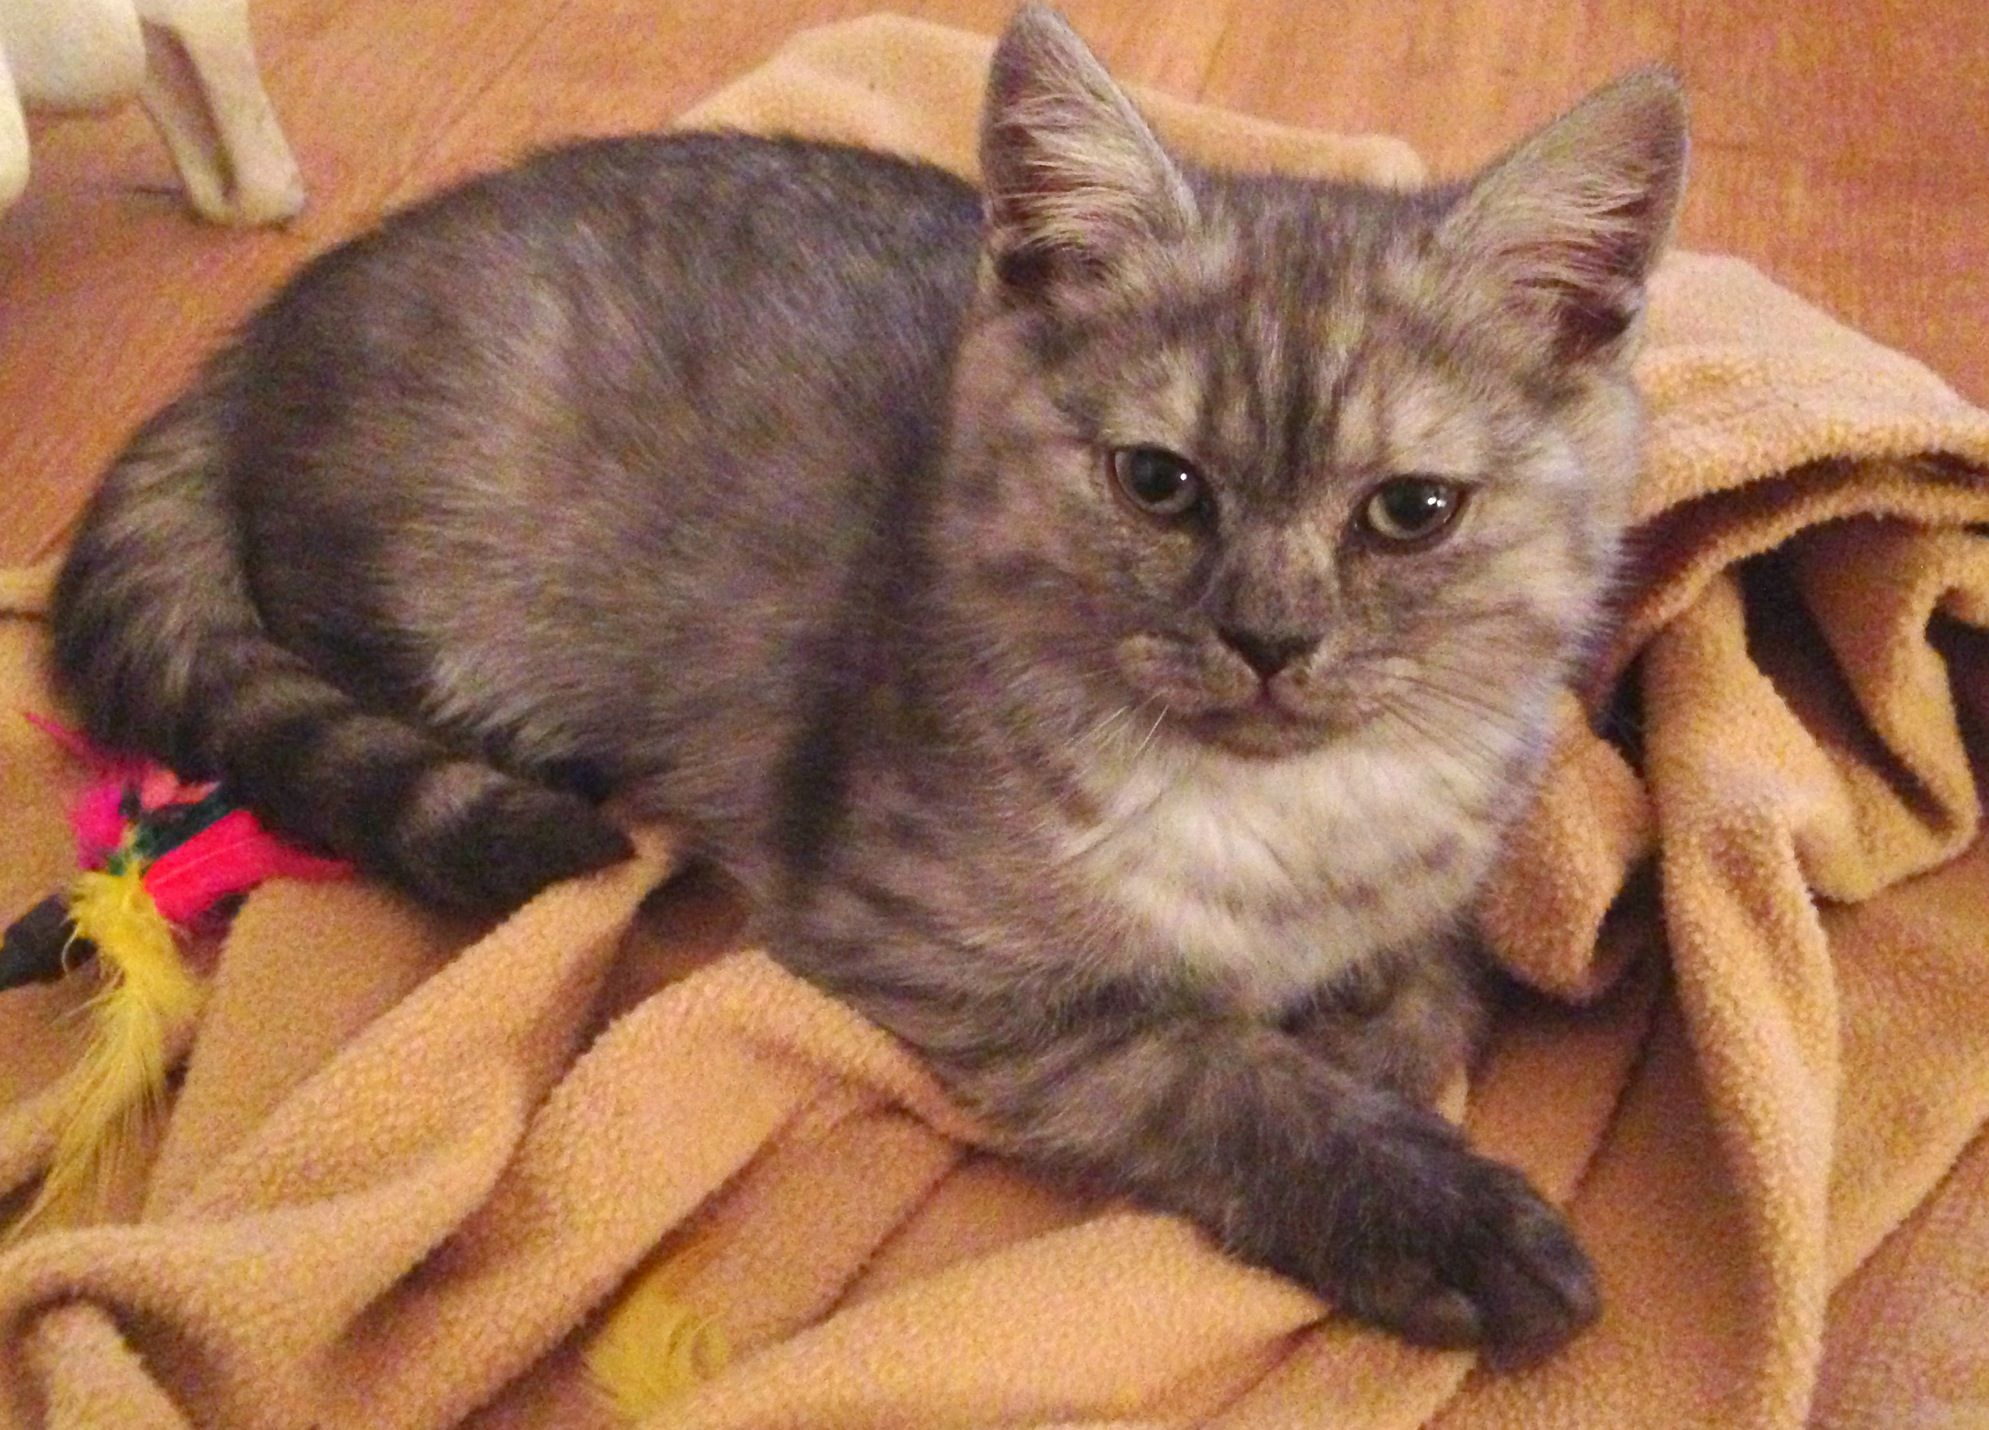 Helmut British Shorthair 14 Weeks Old Cute Cats And Kittens Cute Animals Cute Cats